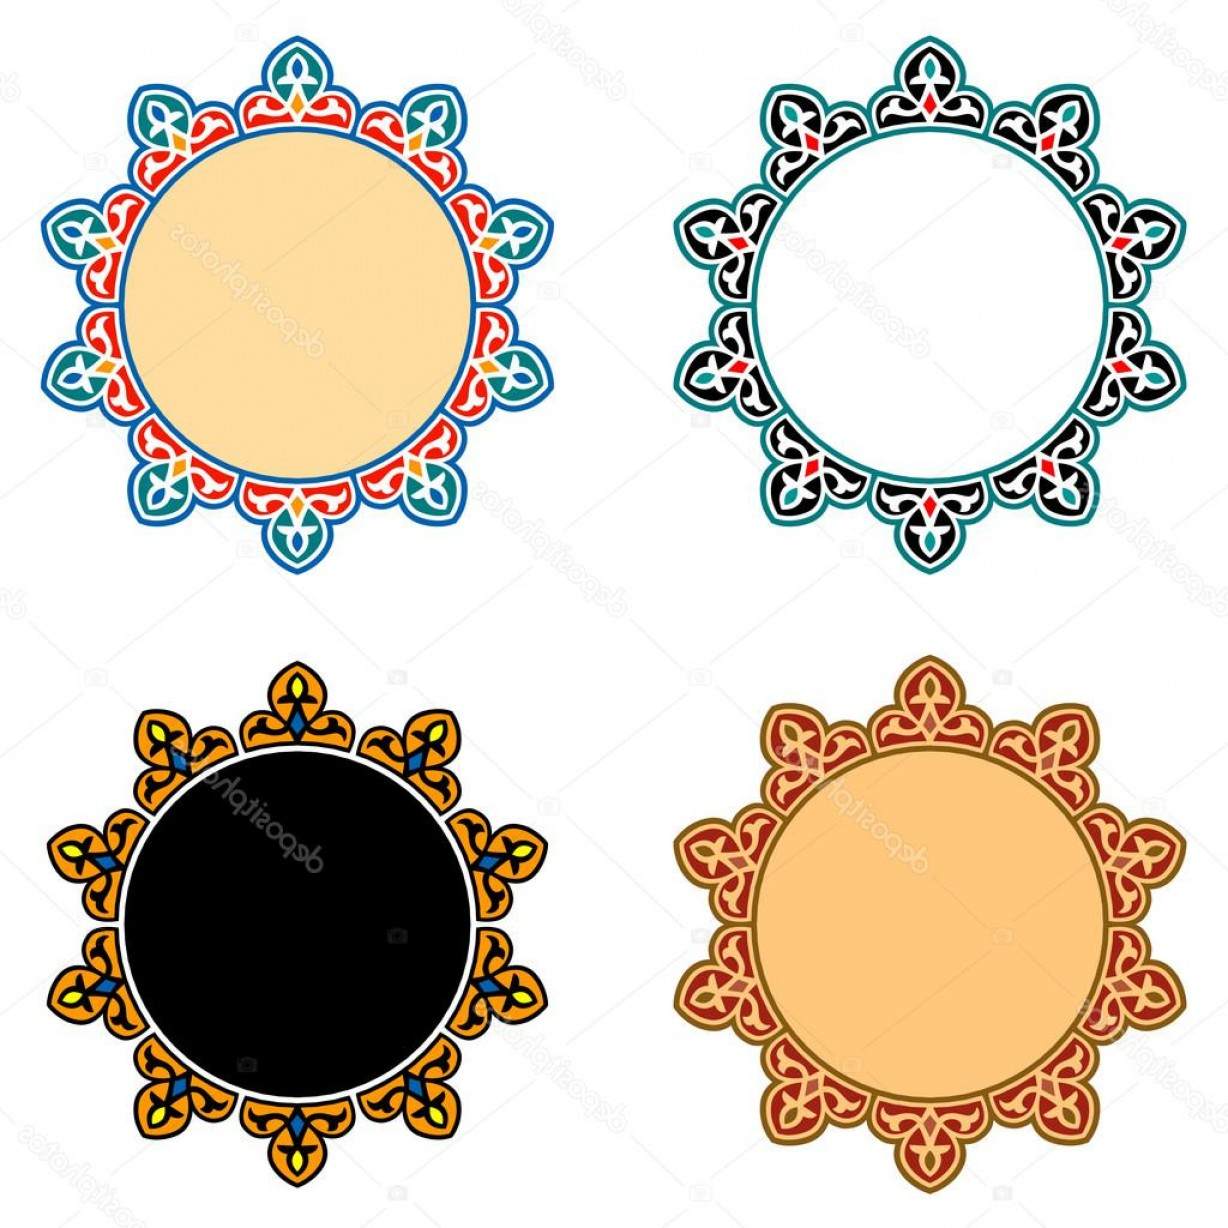 Open Source Vector Graphic Flower: Stock Illustration Vector Islamic Star Ornaments